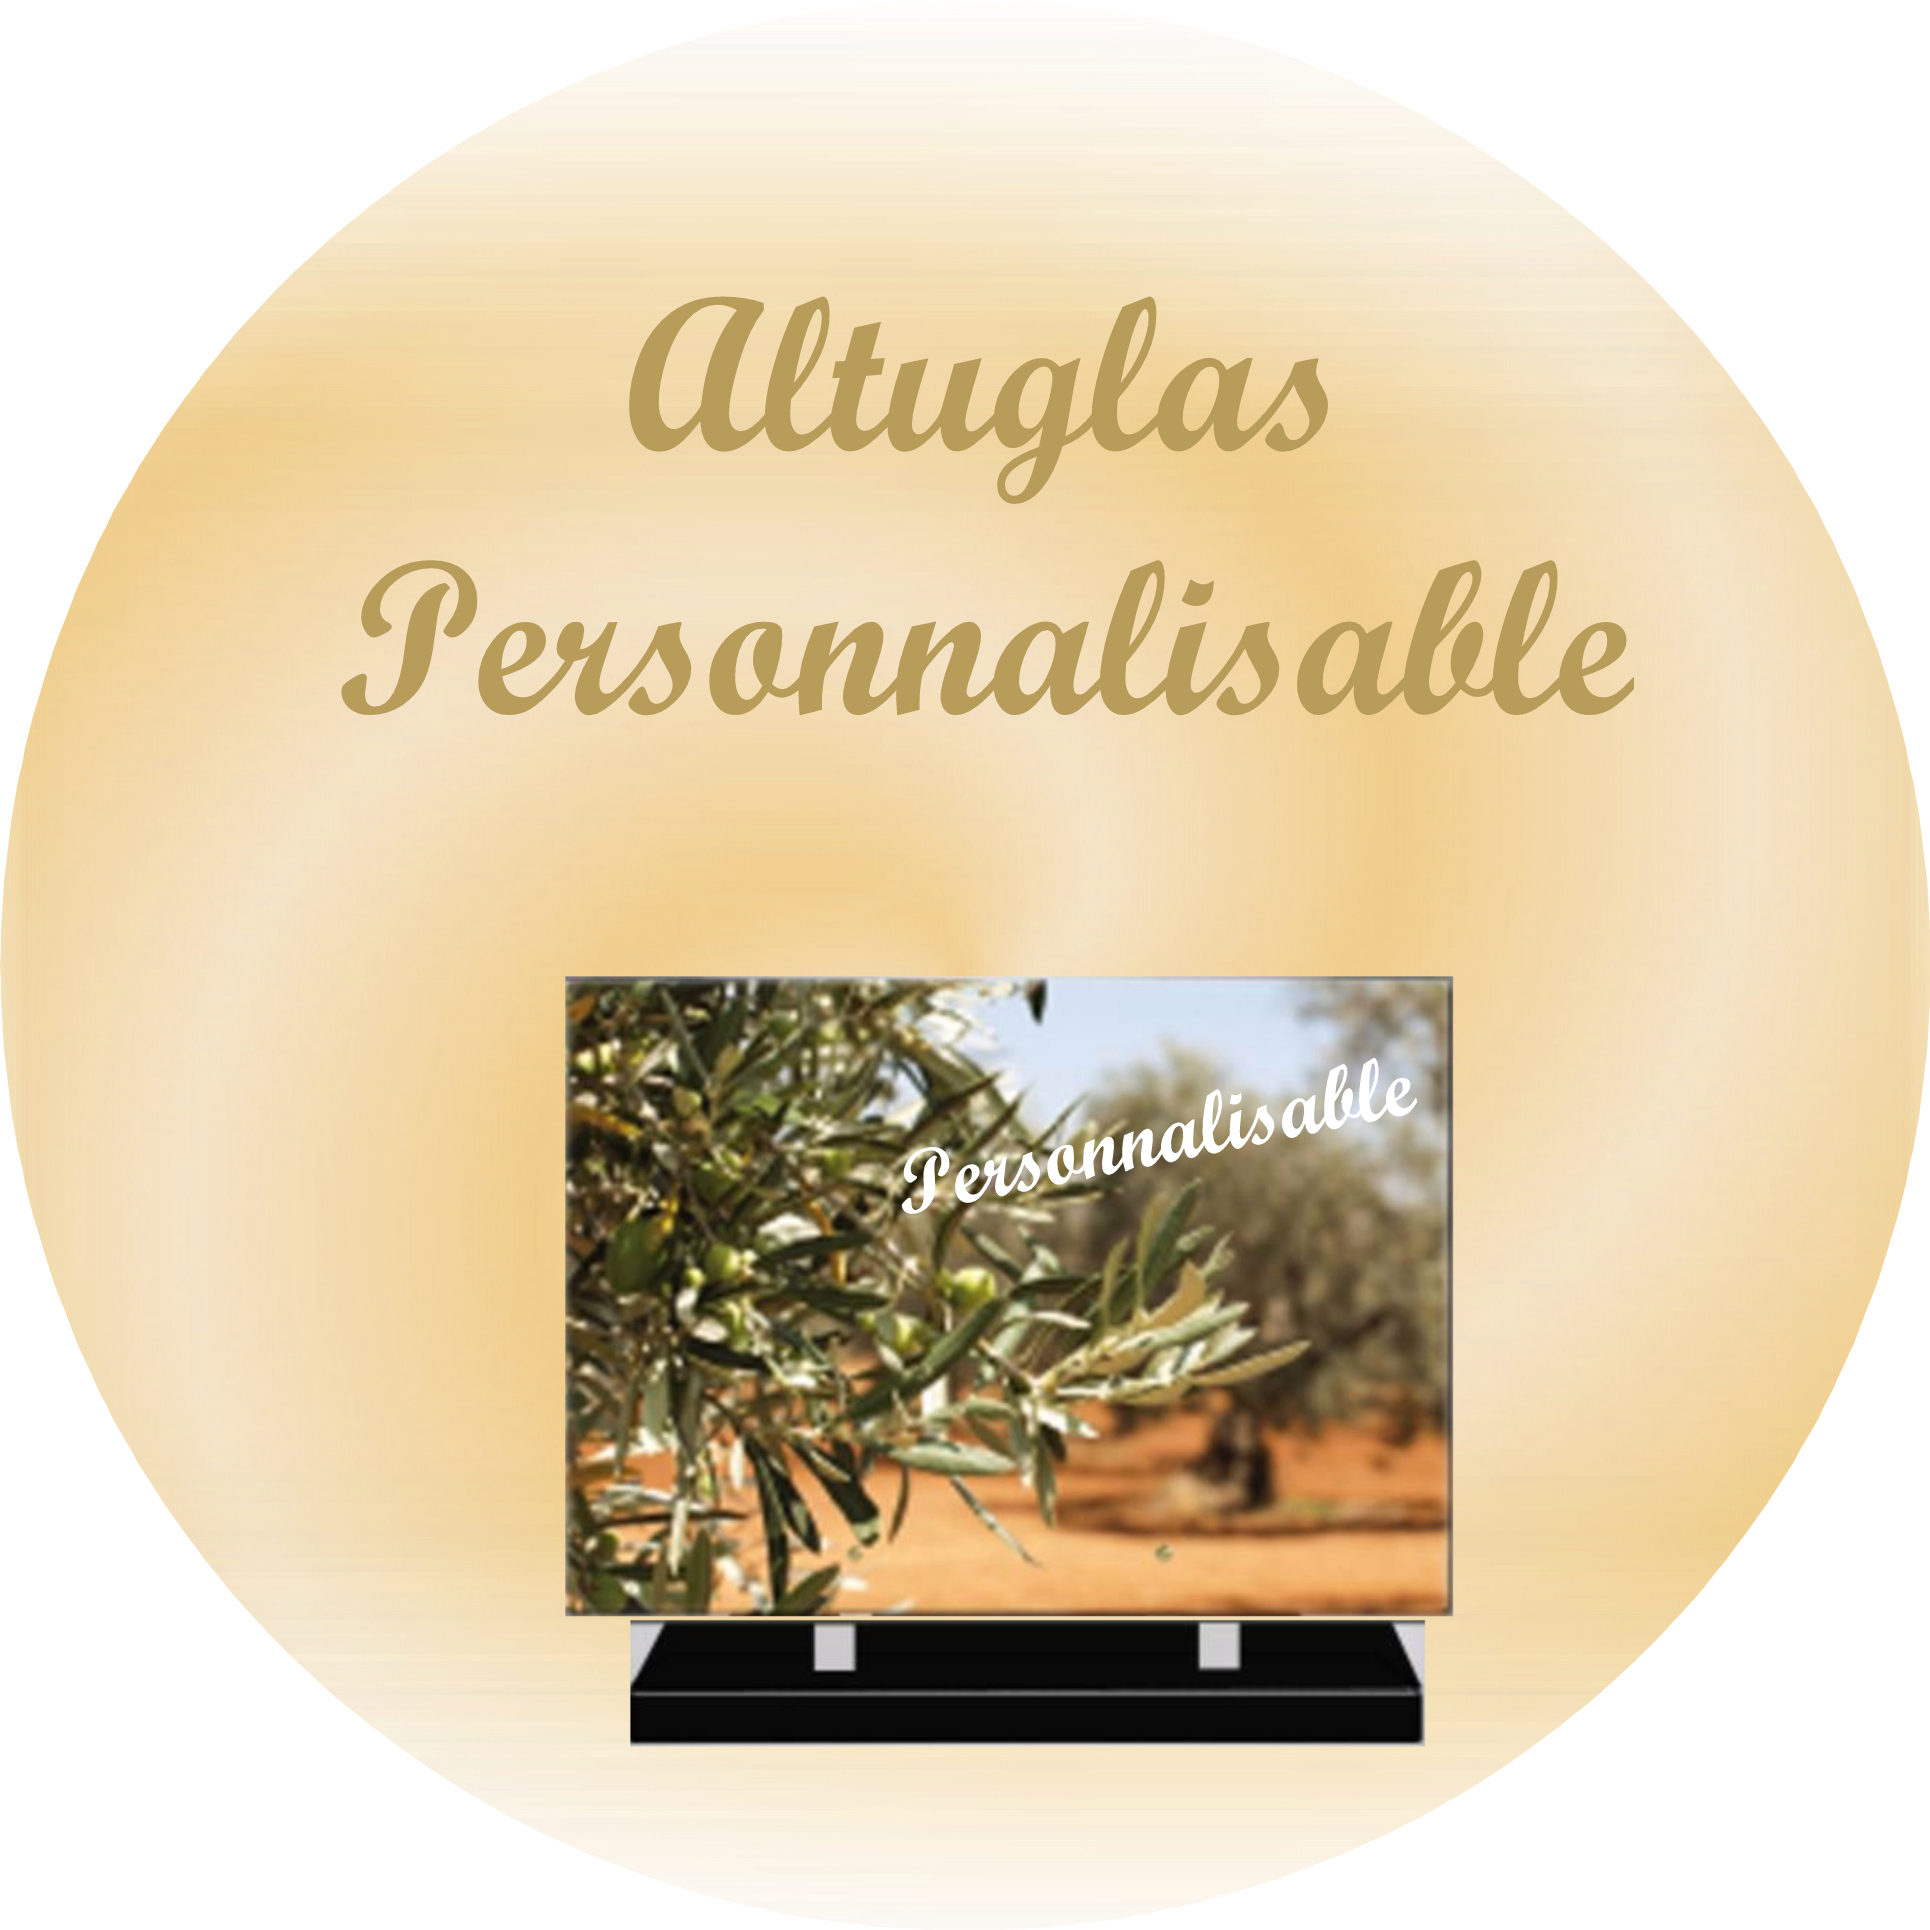 PLAQUES FUNERAIRES MODERNES PERSONNALISABLES RECTANGLE BARLY